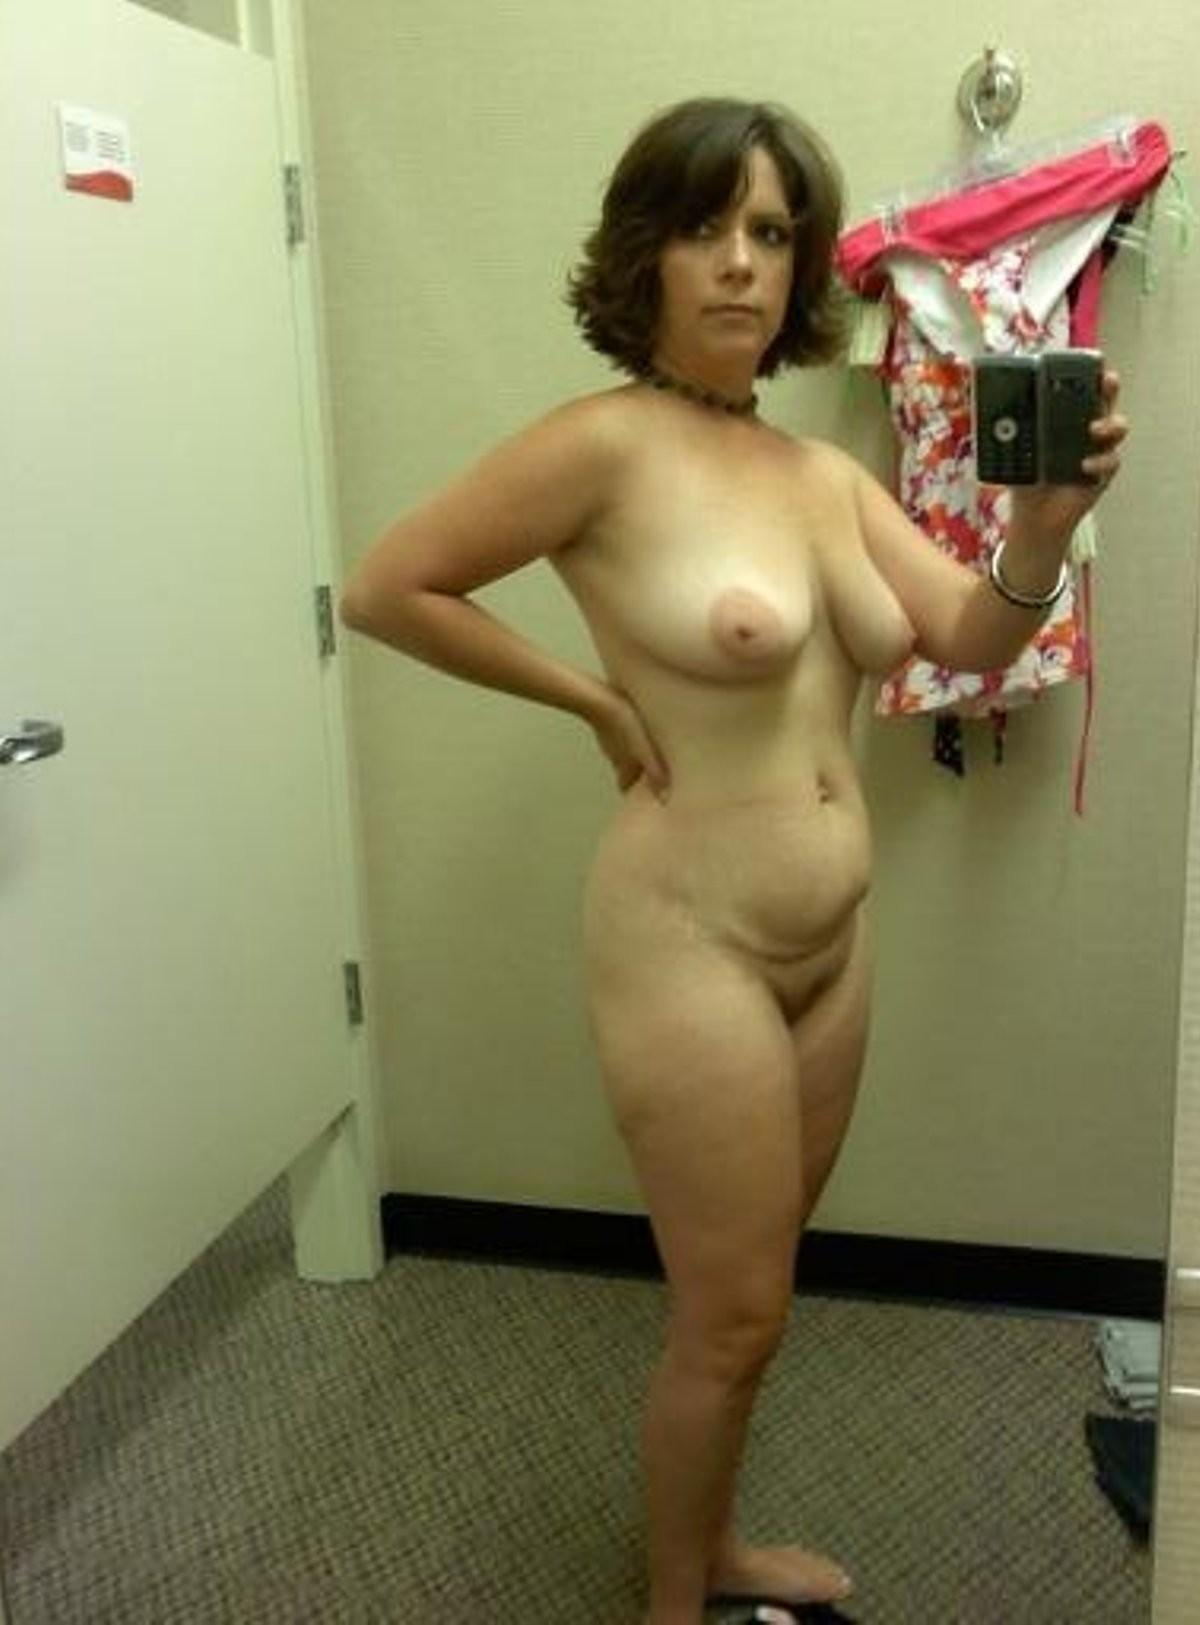 Brunette Mom loves taking selfie of attractive nude body in dressing room. Amateur wife takes mirror selfie while removing dress